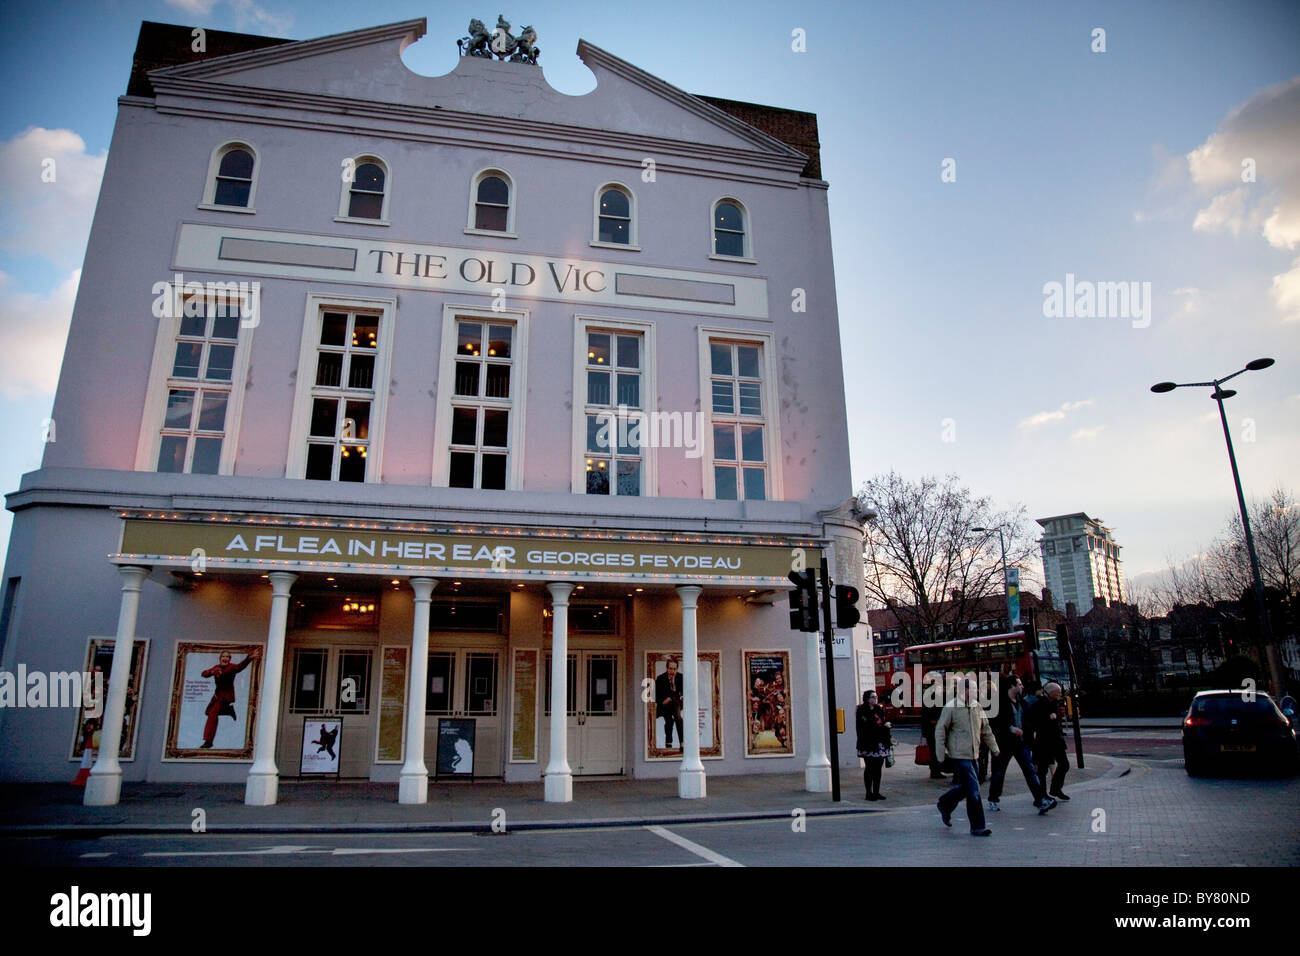 Exterior of The Old Vic Theatre on The Cut in London. - Stock Image